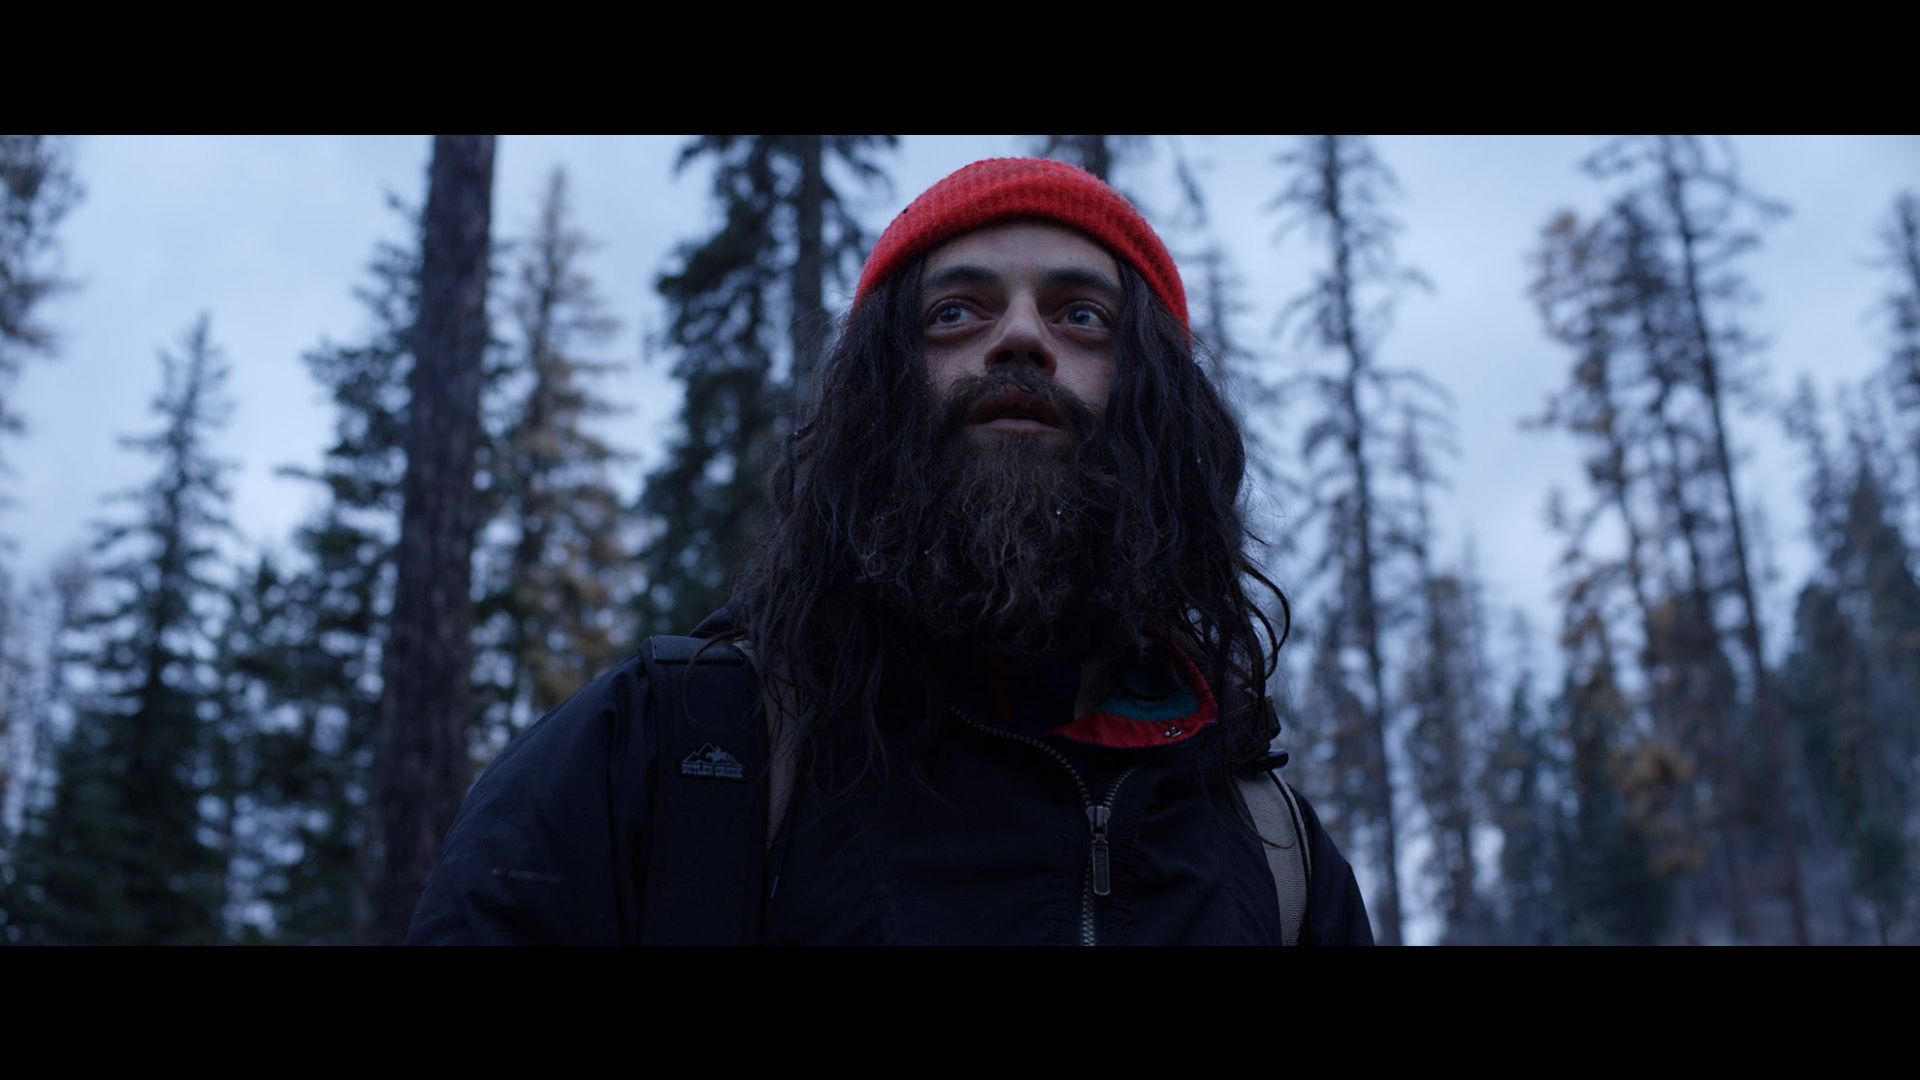 First Teaser for Rami Malek in drama 'Buster's Mal Heart'